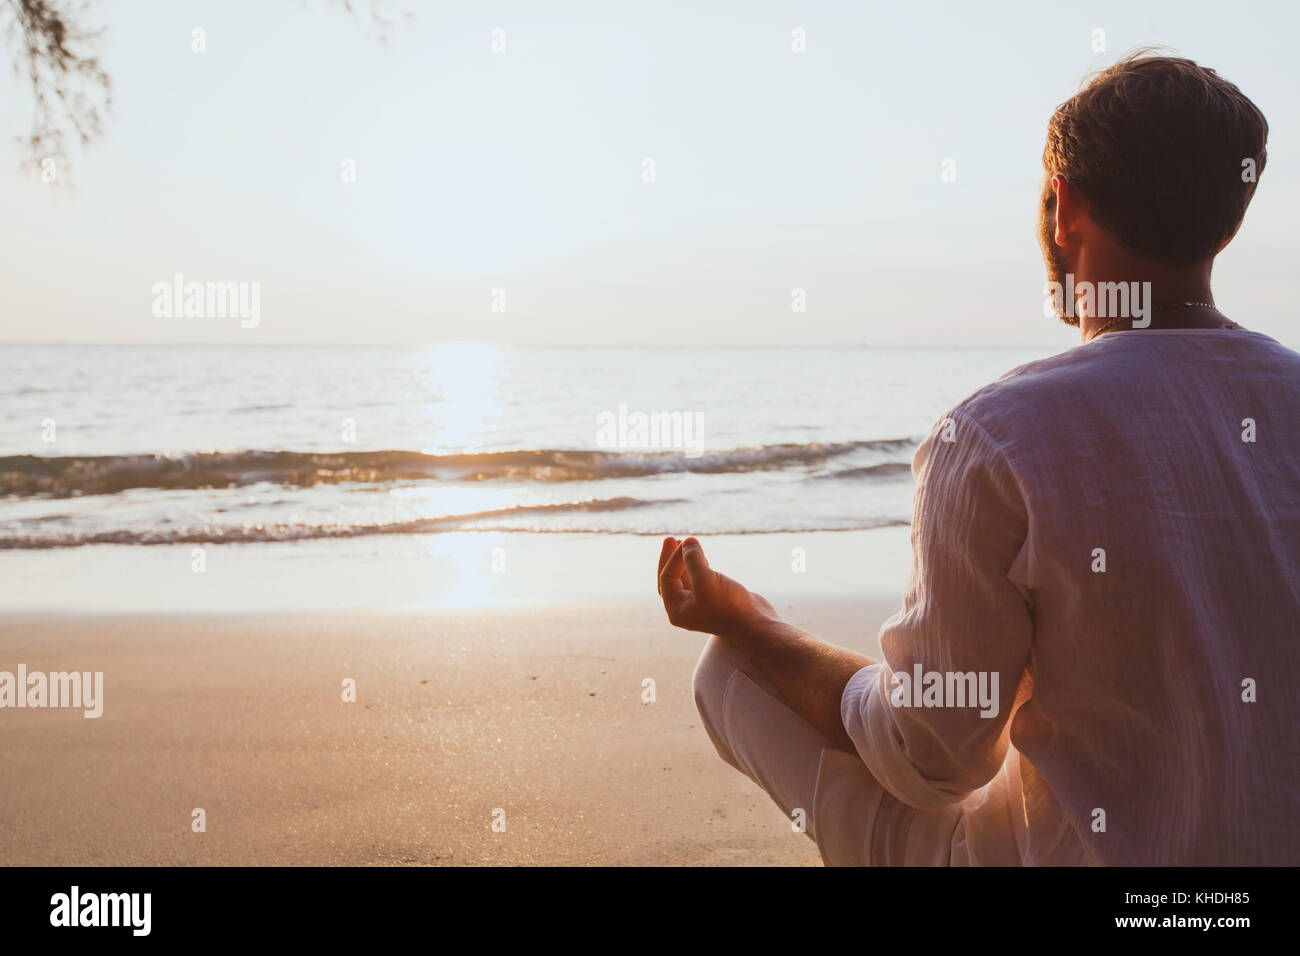 meditation, man practicing yoga at sunset beach, background with copy space - Stock Image